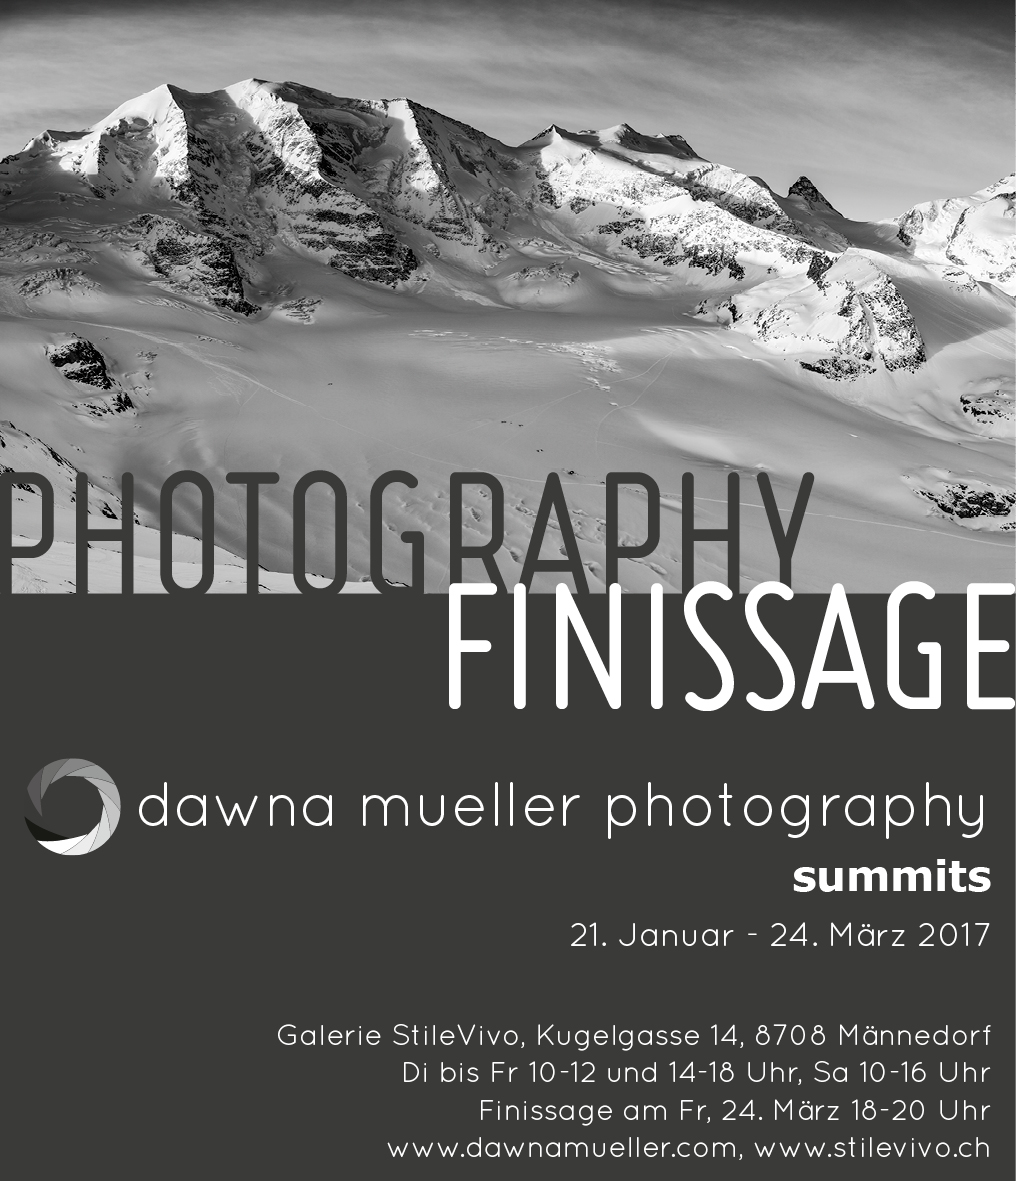 finissage_poster